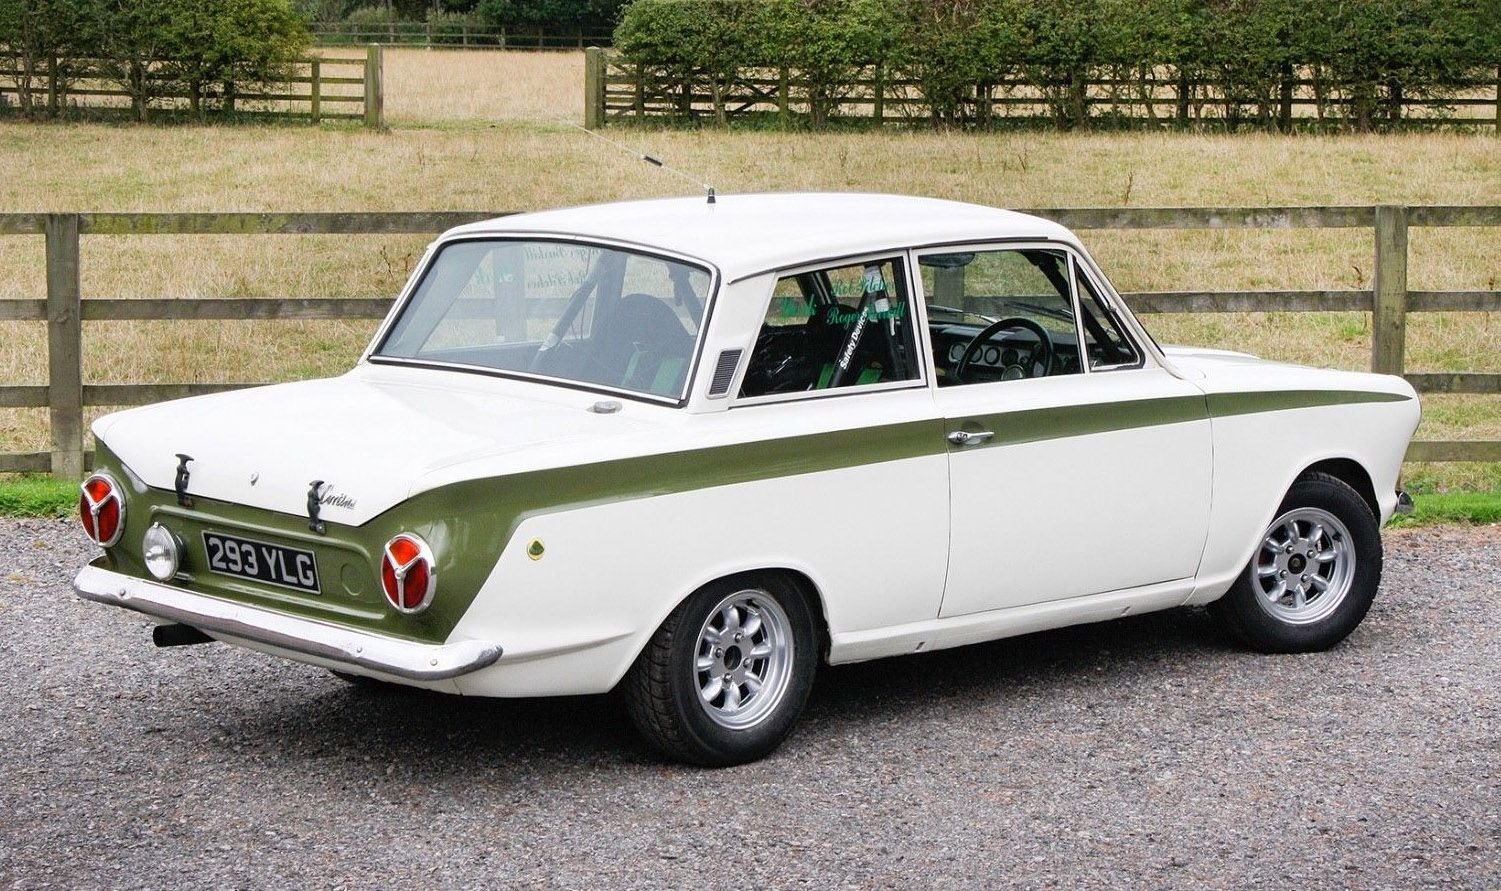 1966 Ford Lotus Cortina On Ebay Here Https Ebay To 2mhikvv Ford Classic Cars Classic Fords For Sale Classic Cars